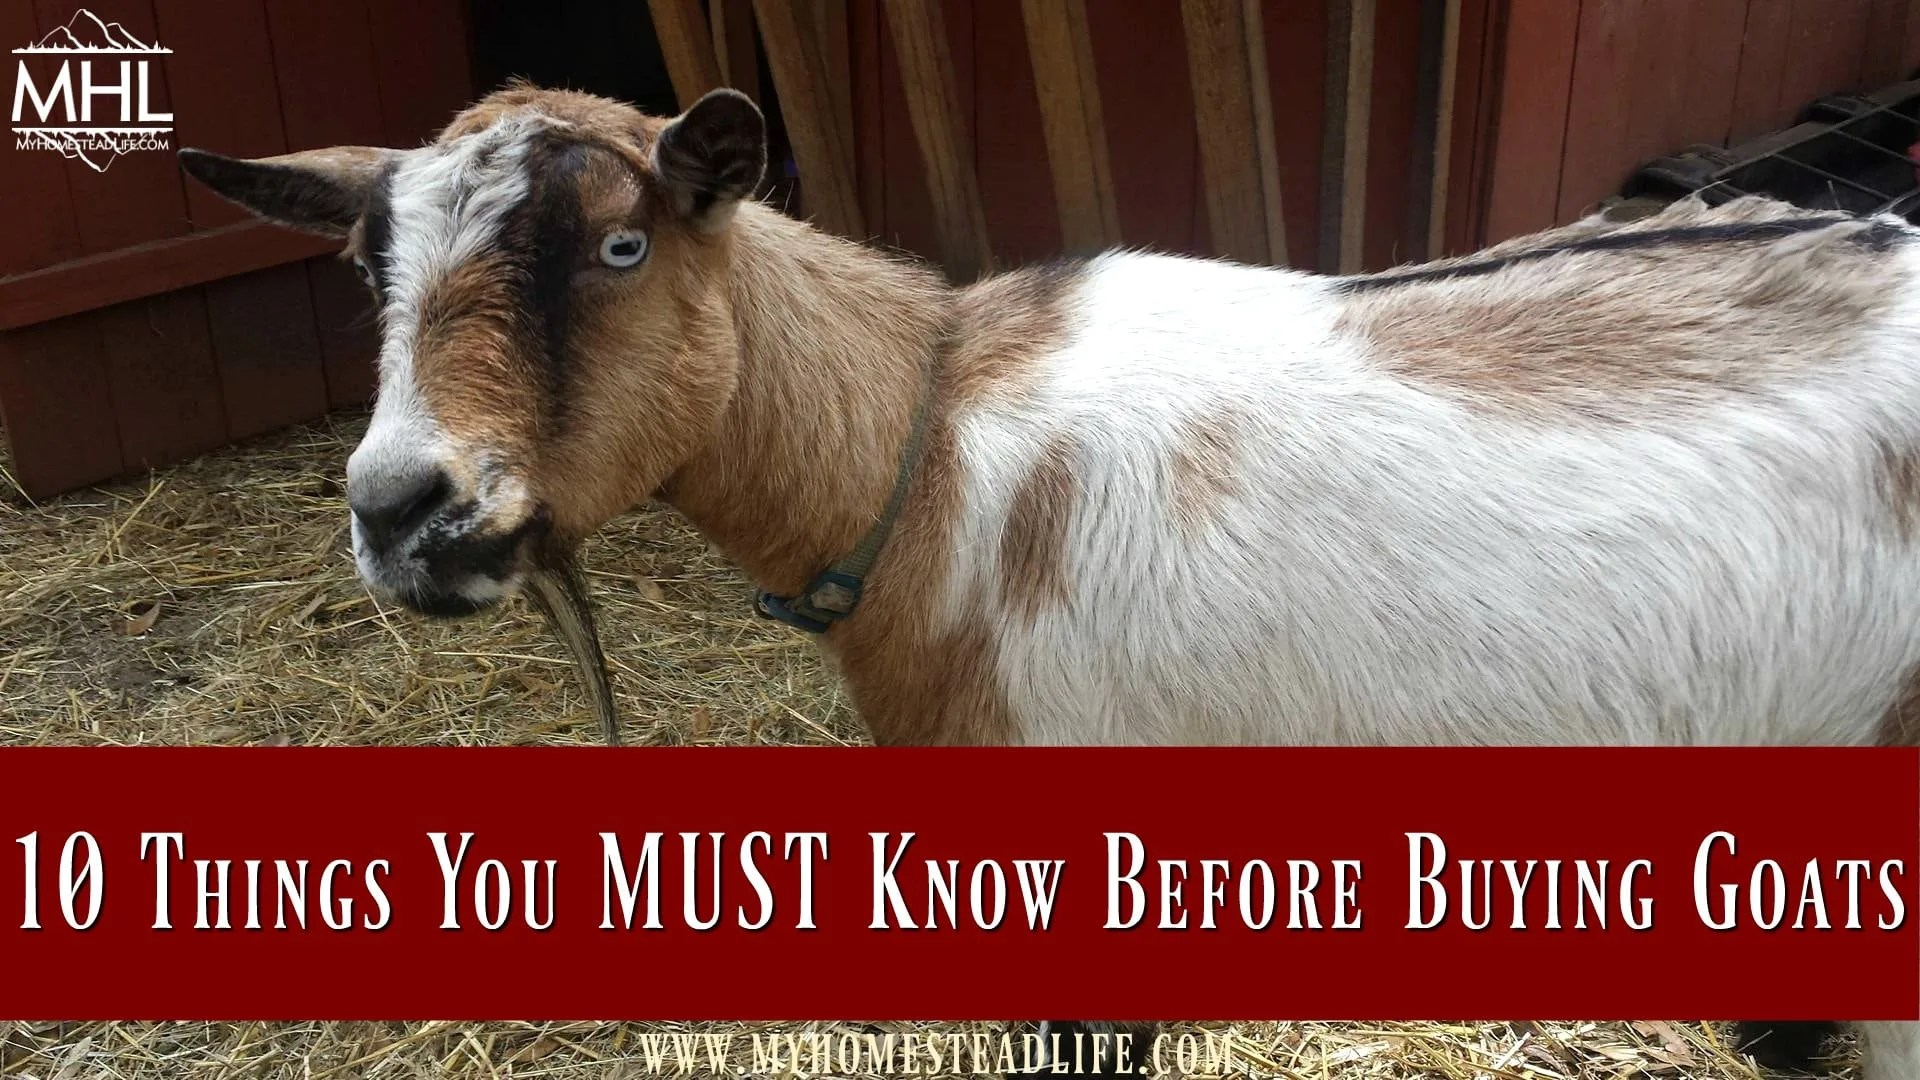 Goats For Sale! 10 Things You MUST Know Before Buying Goats